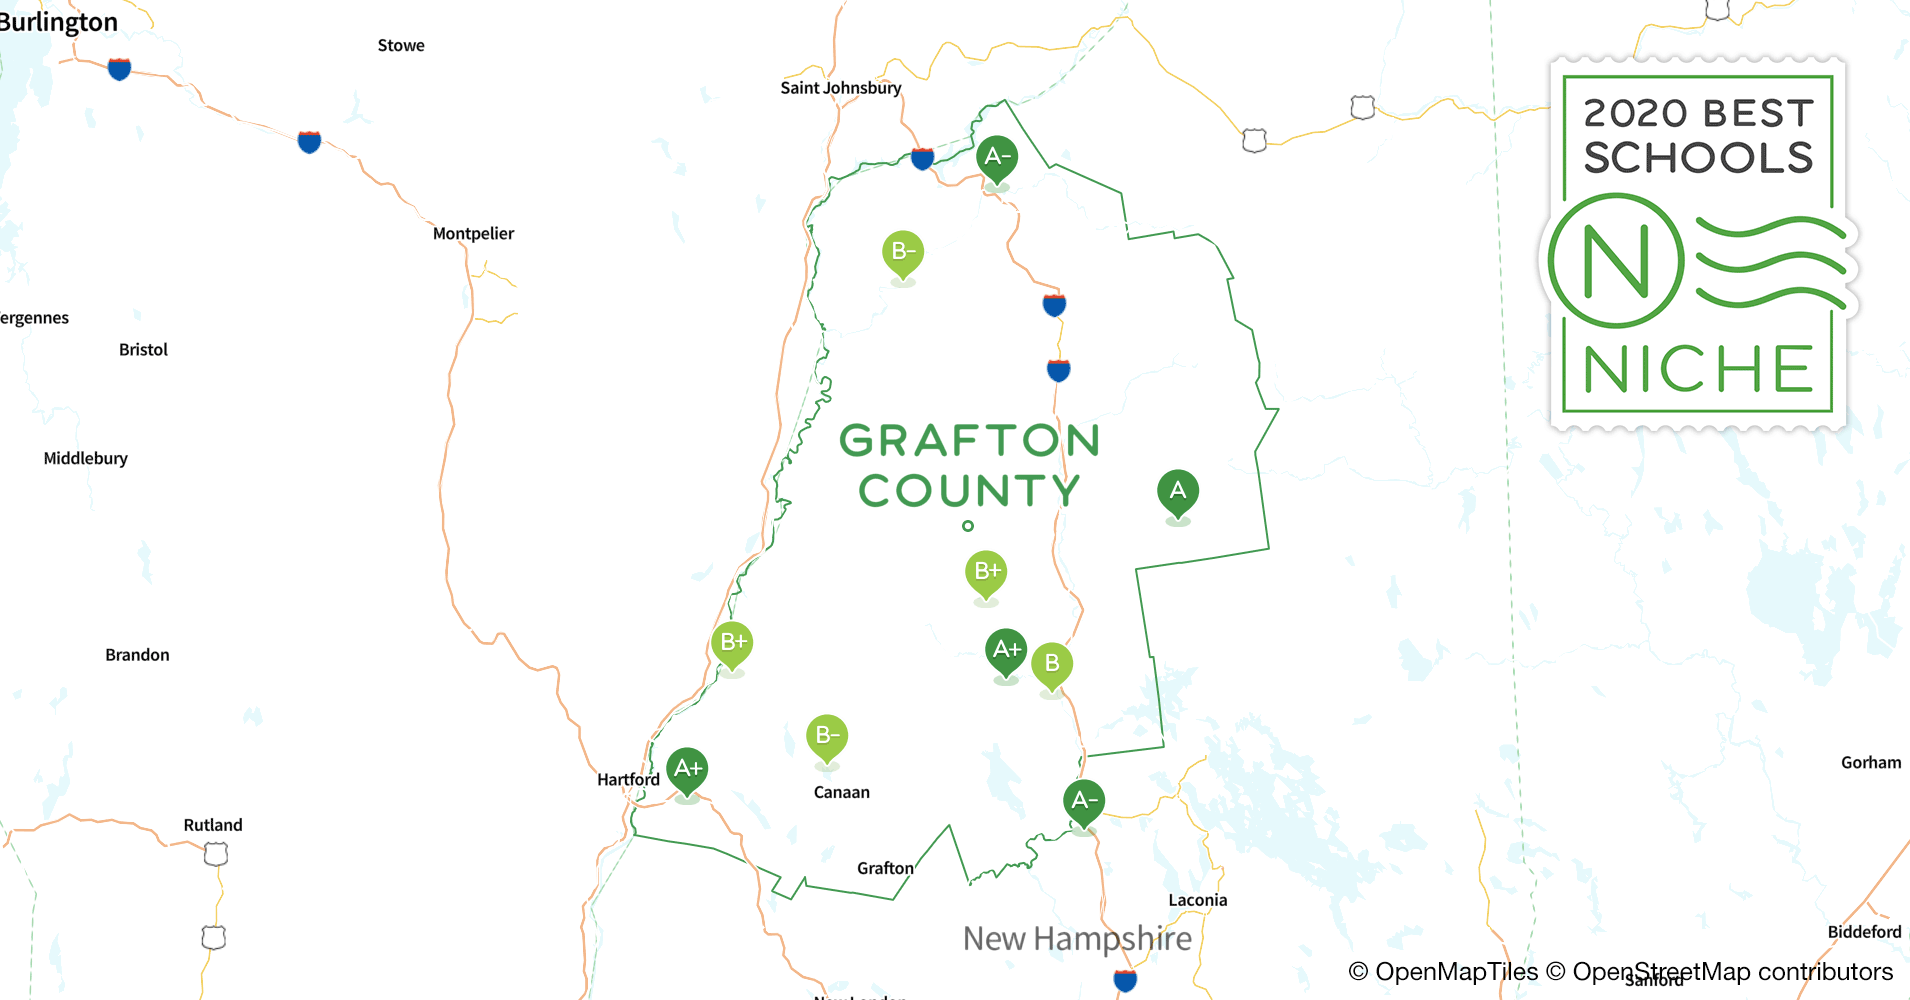 2020 Best Public Elementary Schools in Grafton County, NH